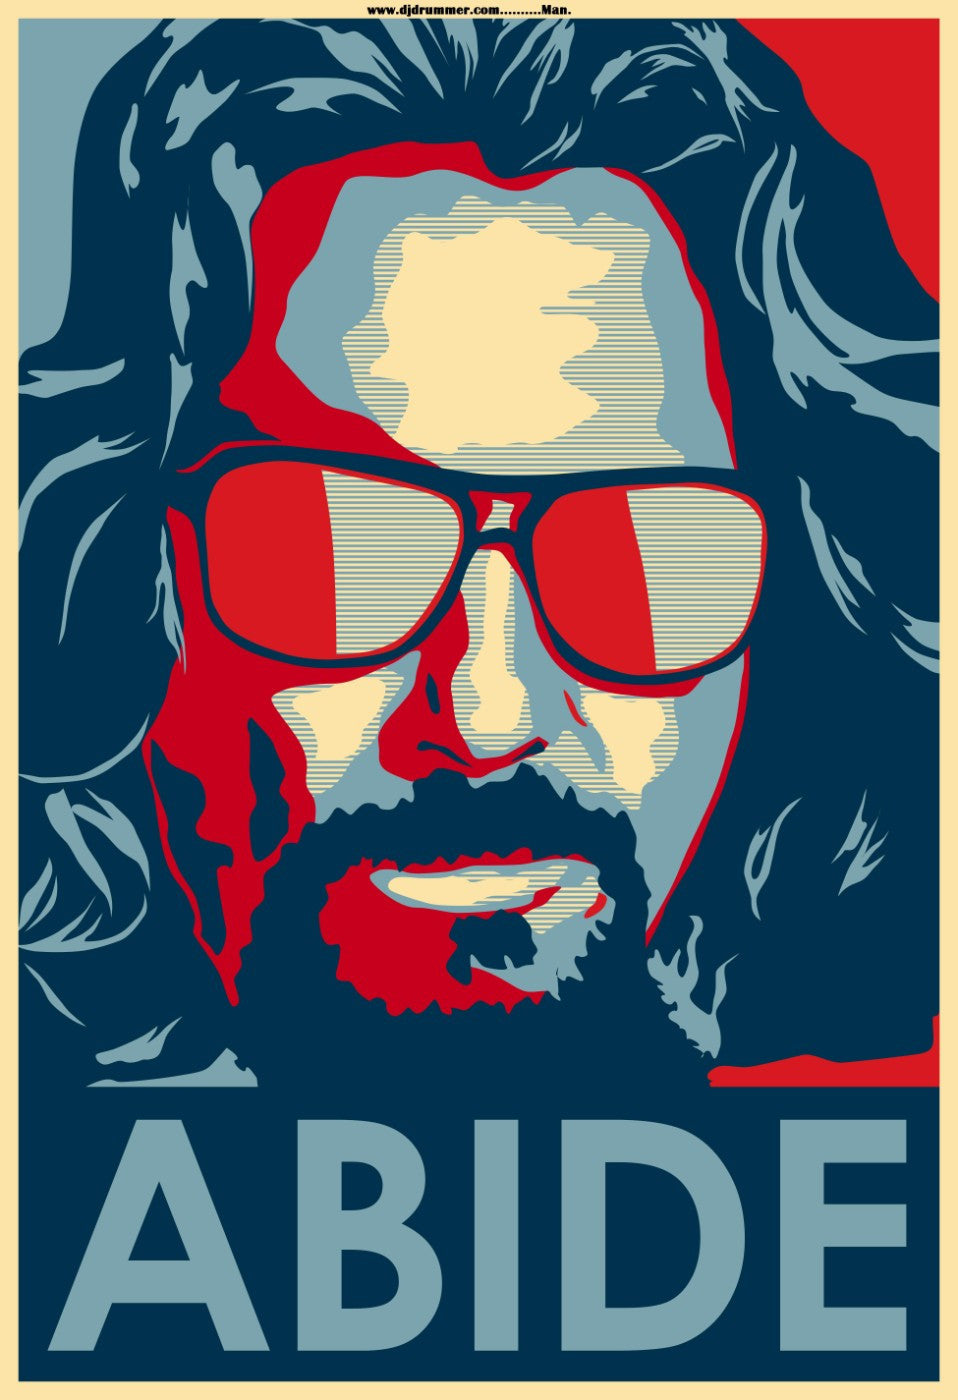 Graphic art poster the big lebowski dude abide hollywood collection large art